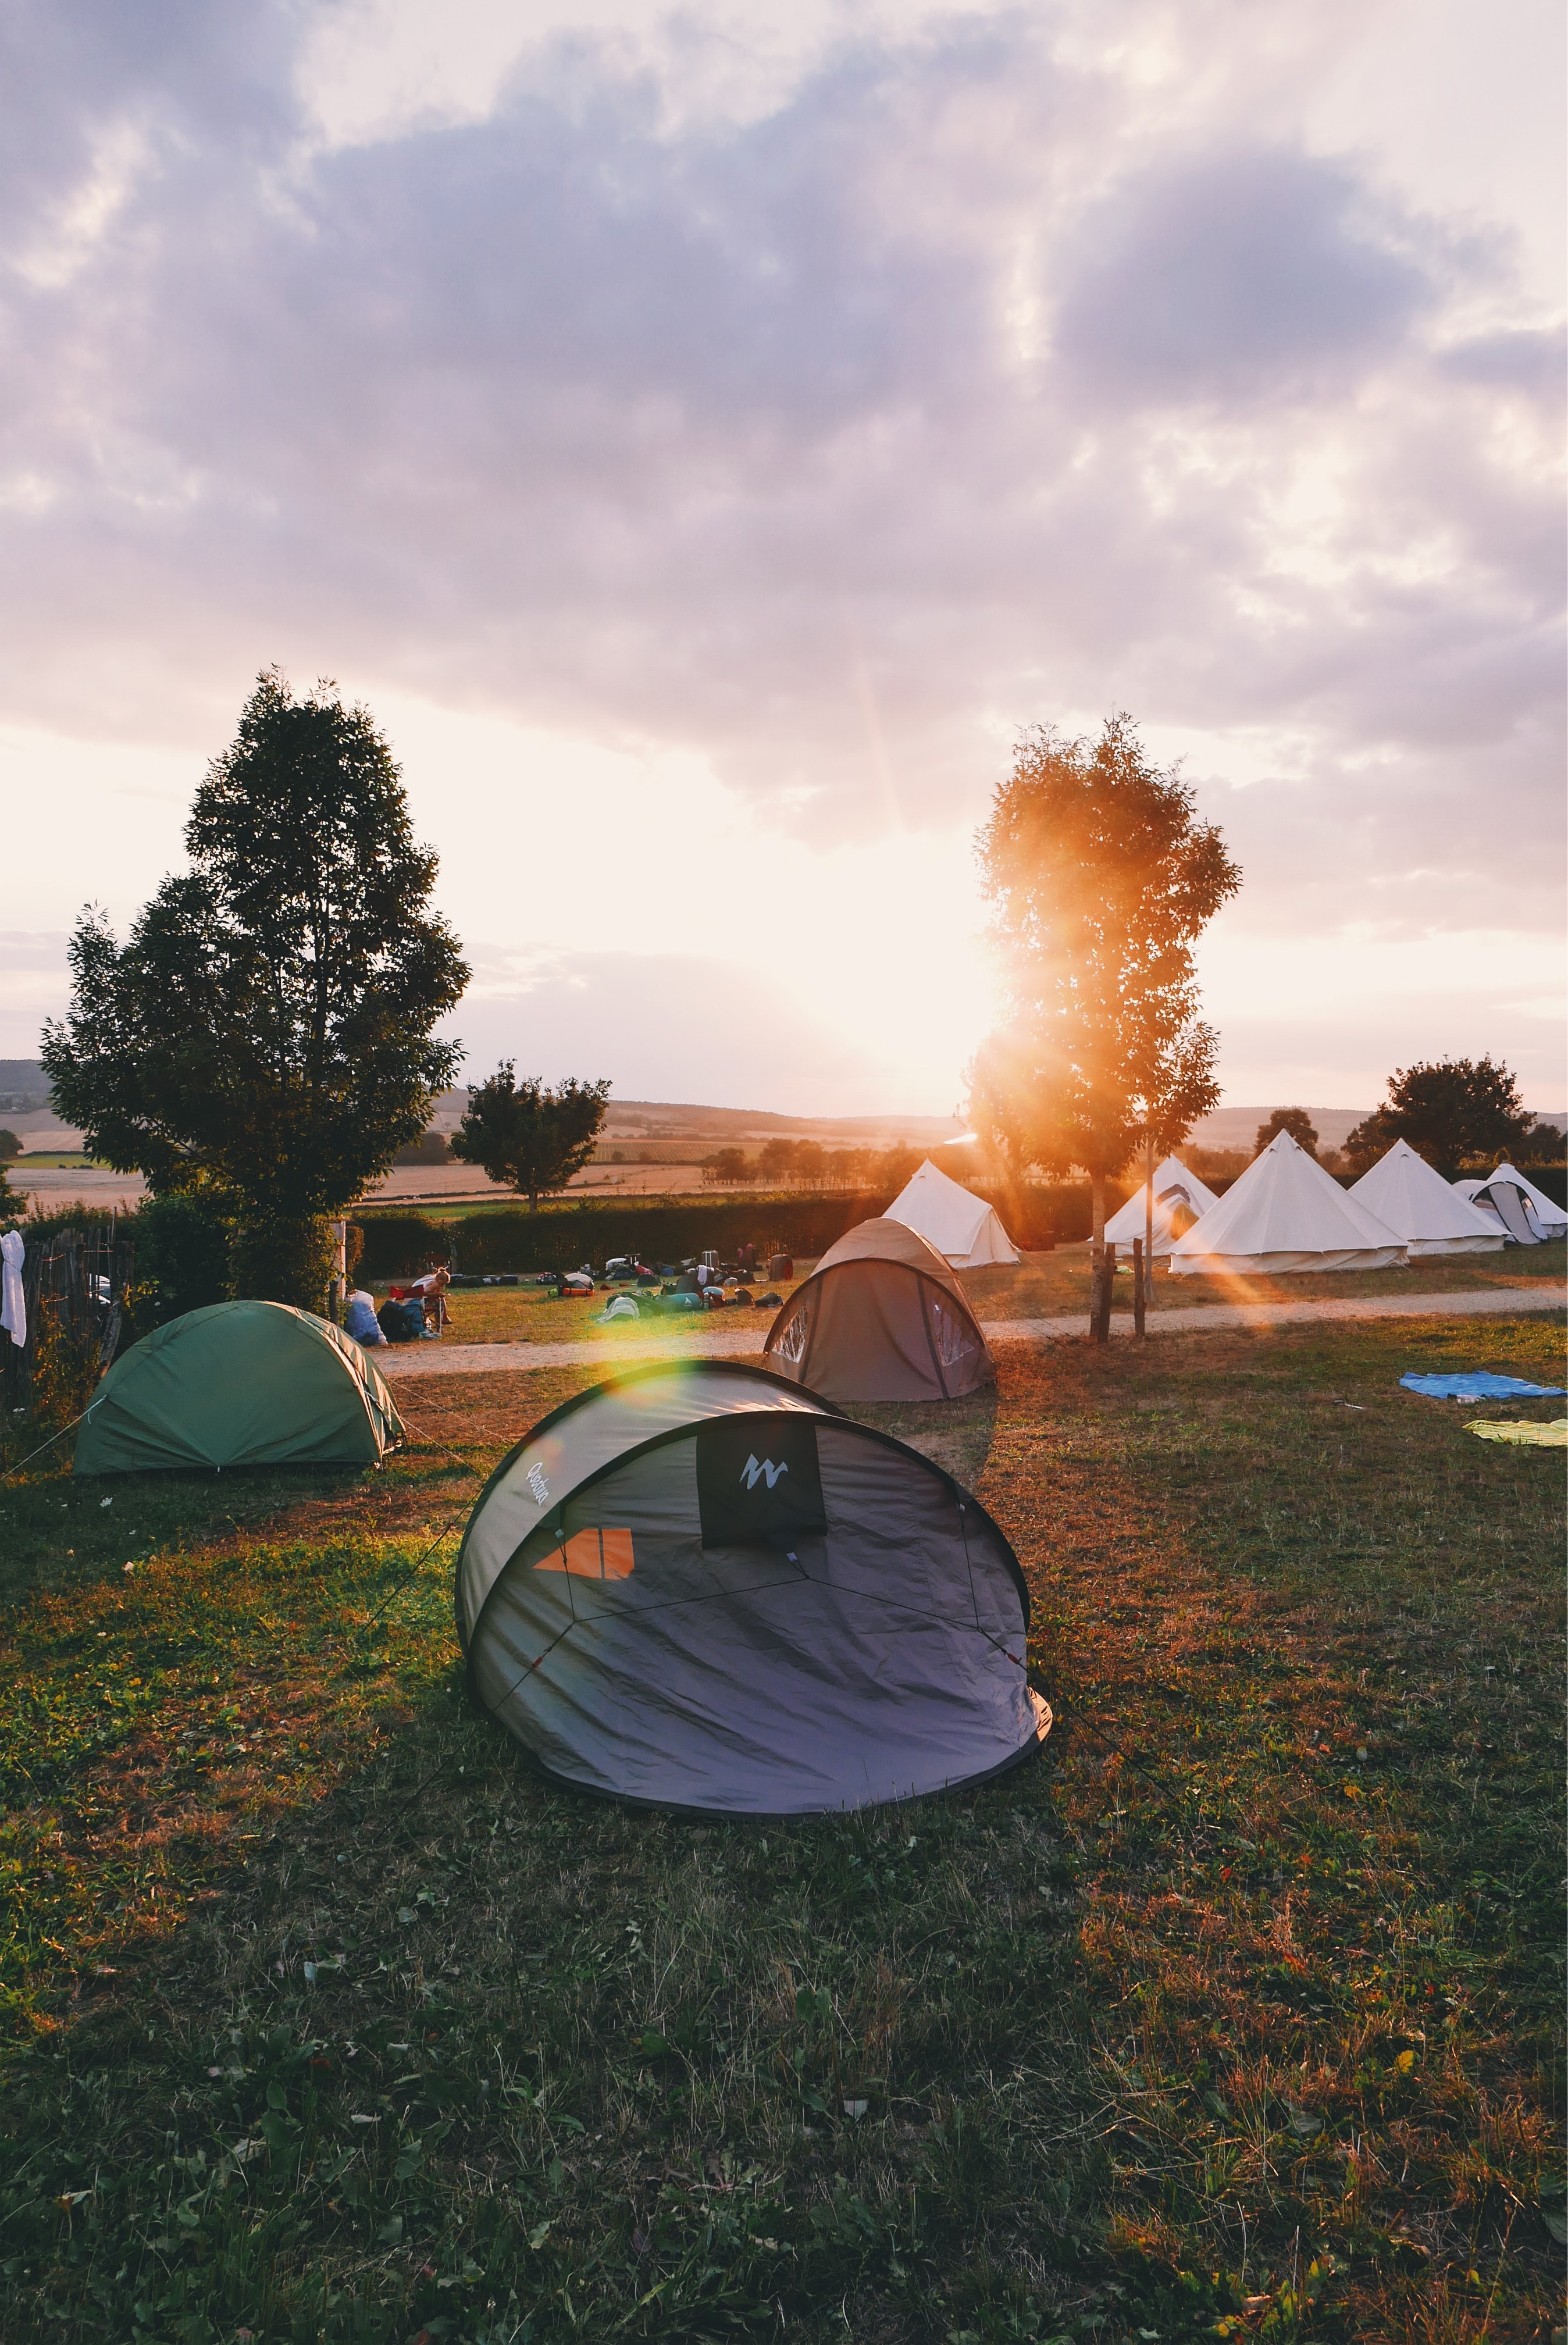 tents on flat ground